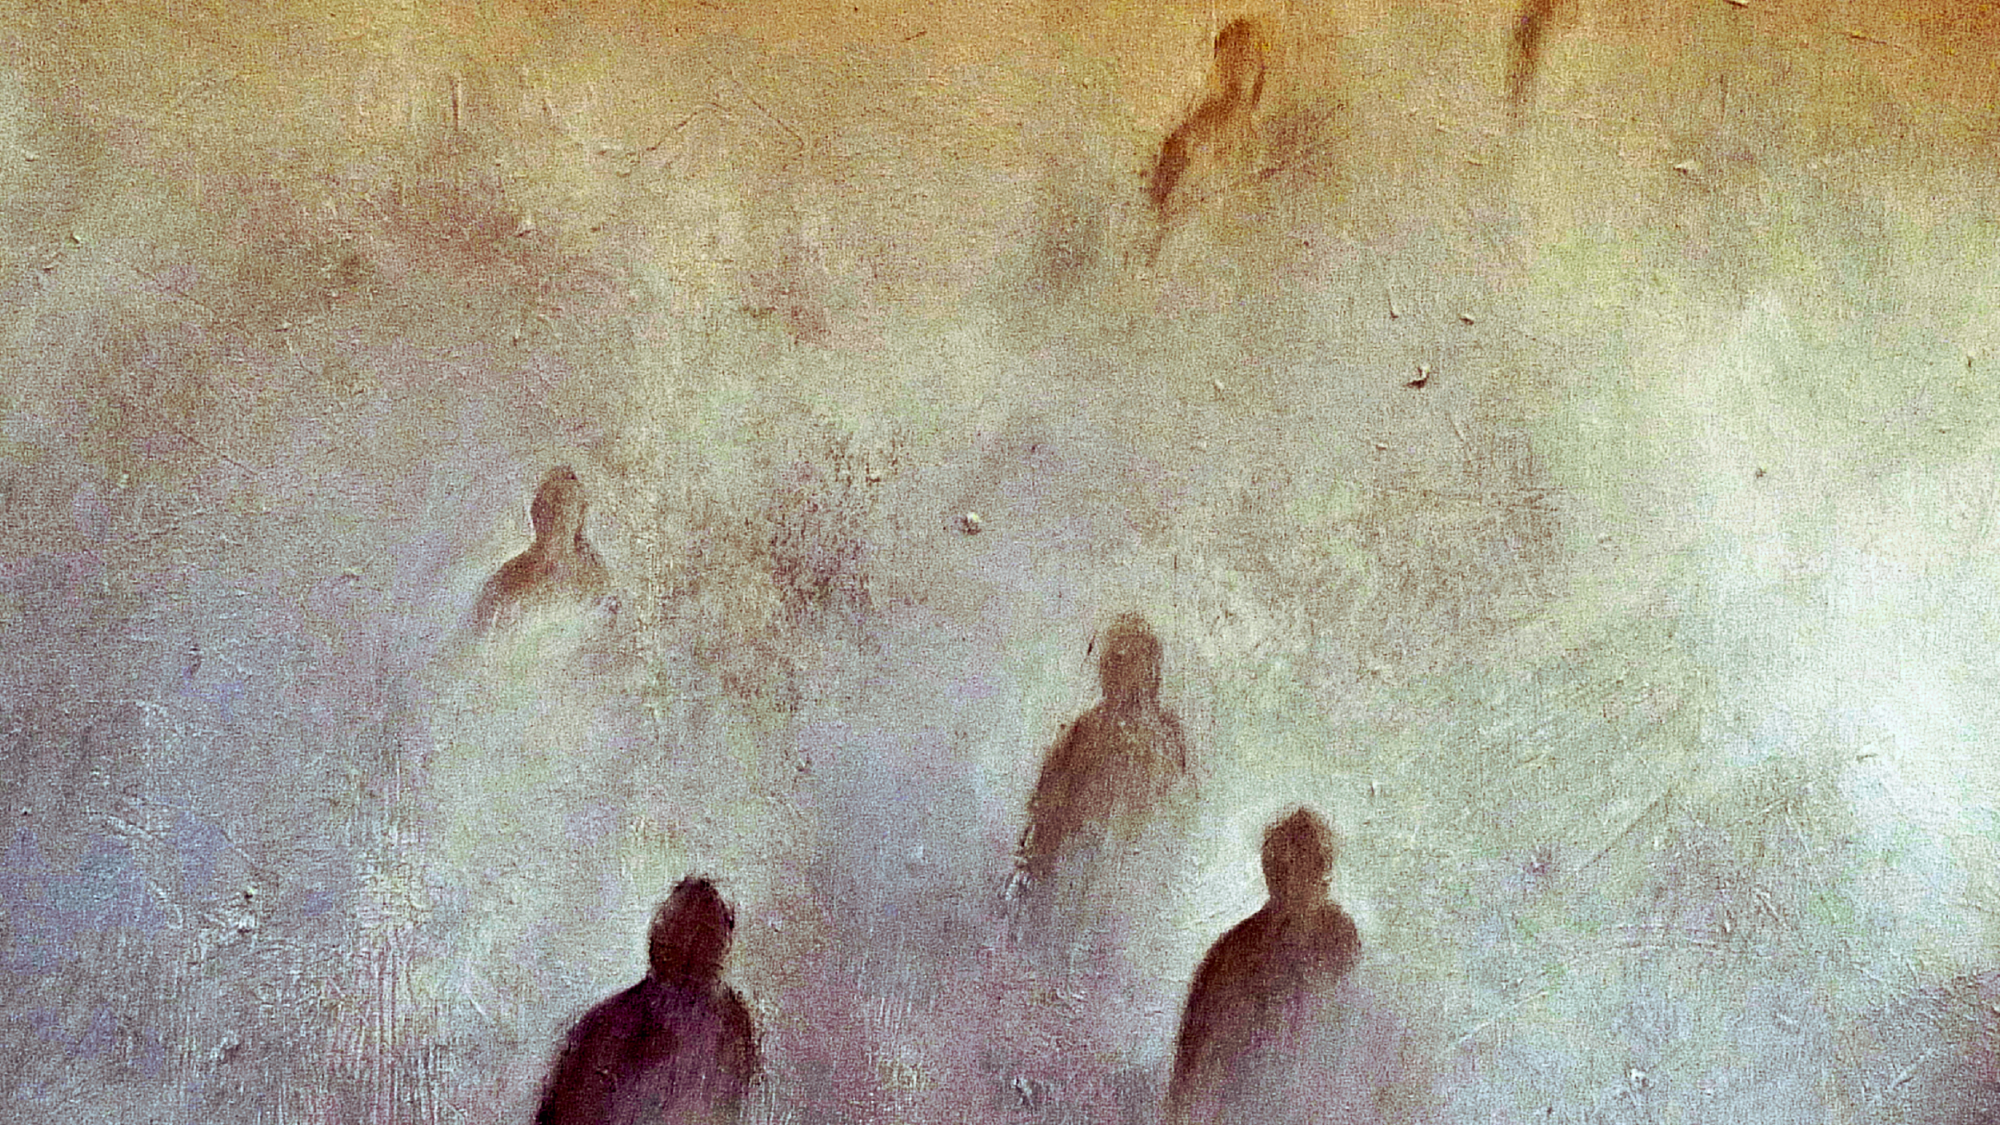 """ The mist "", oil on canvas, private collection"